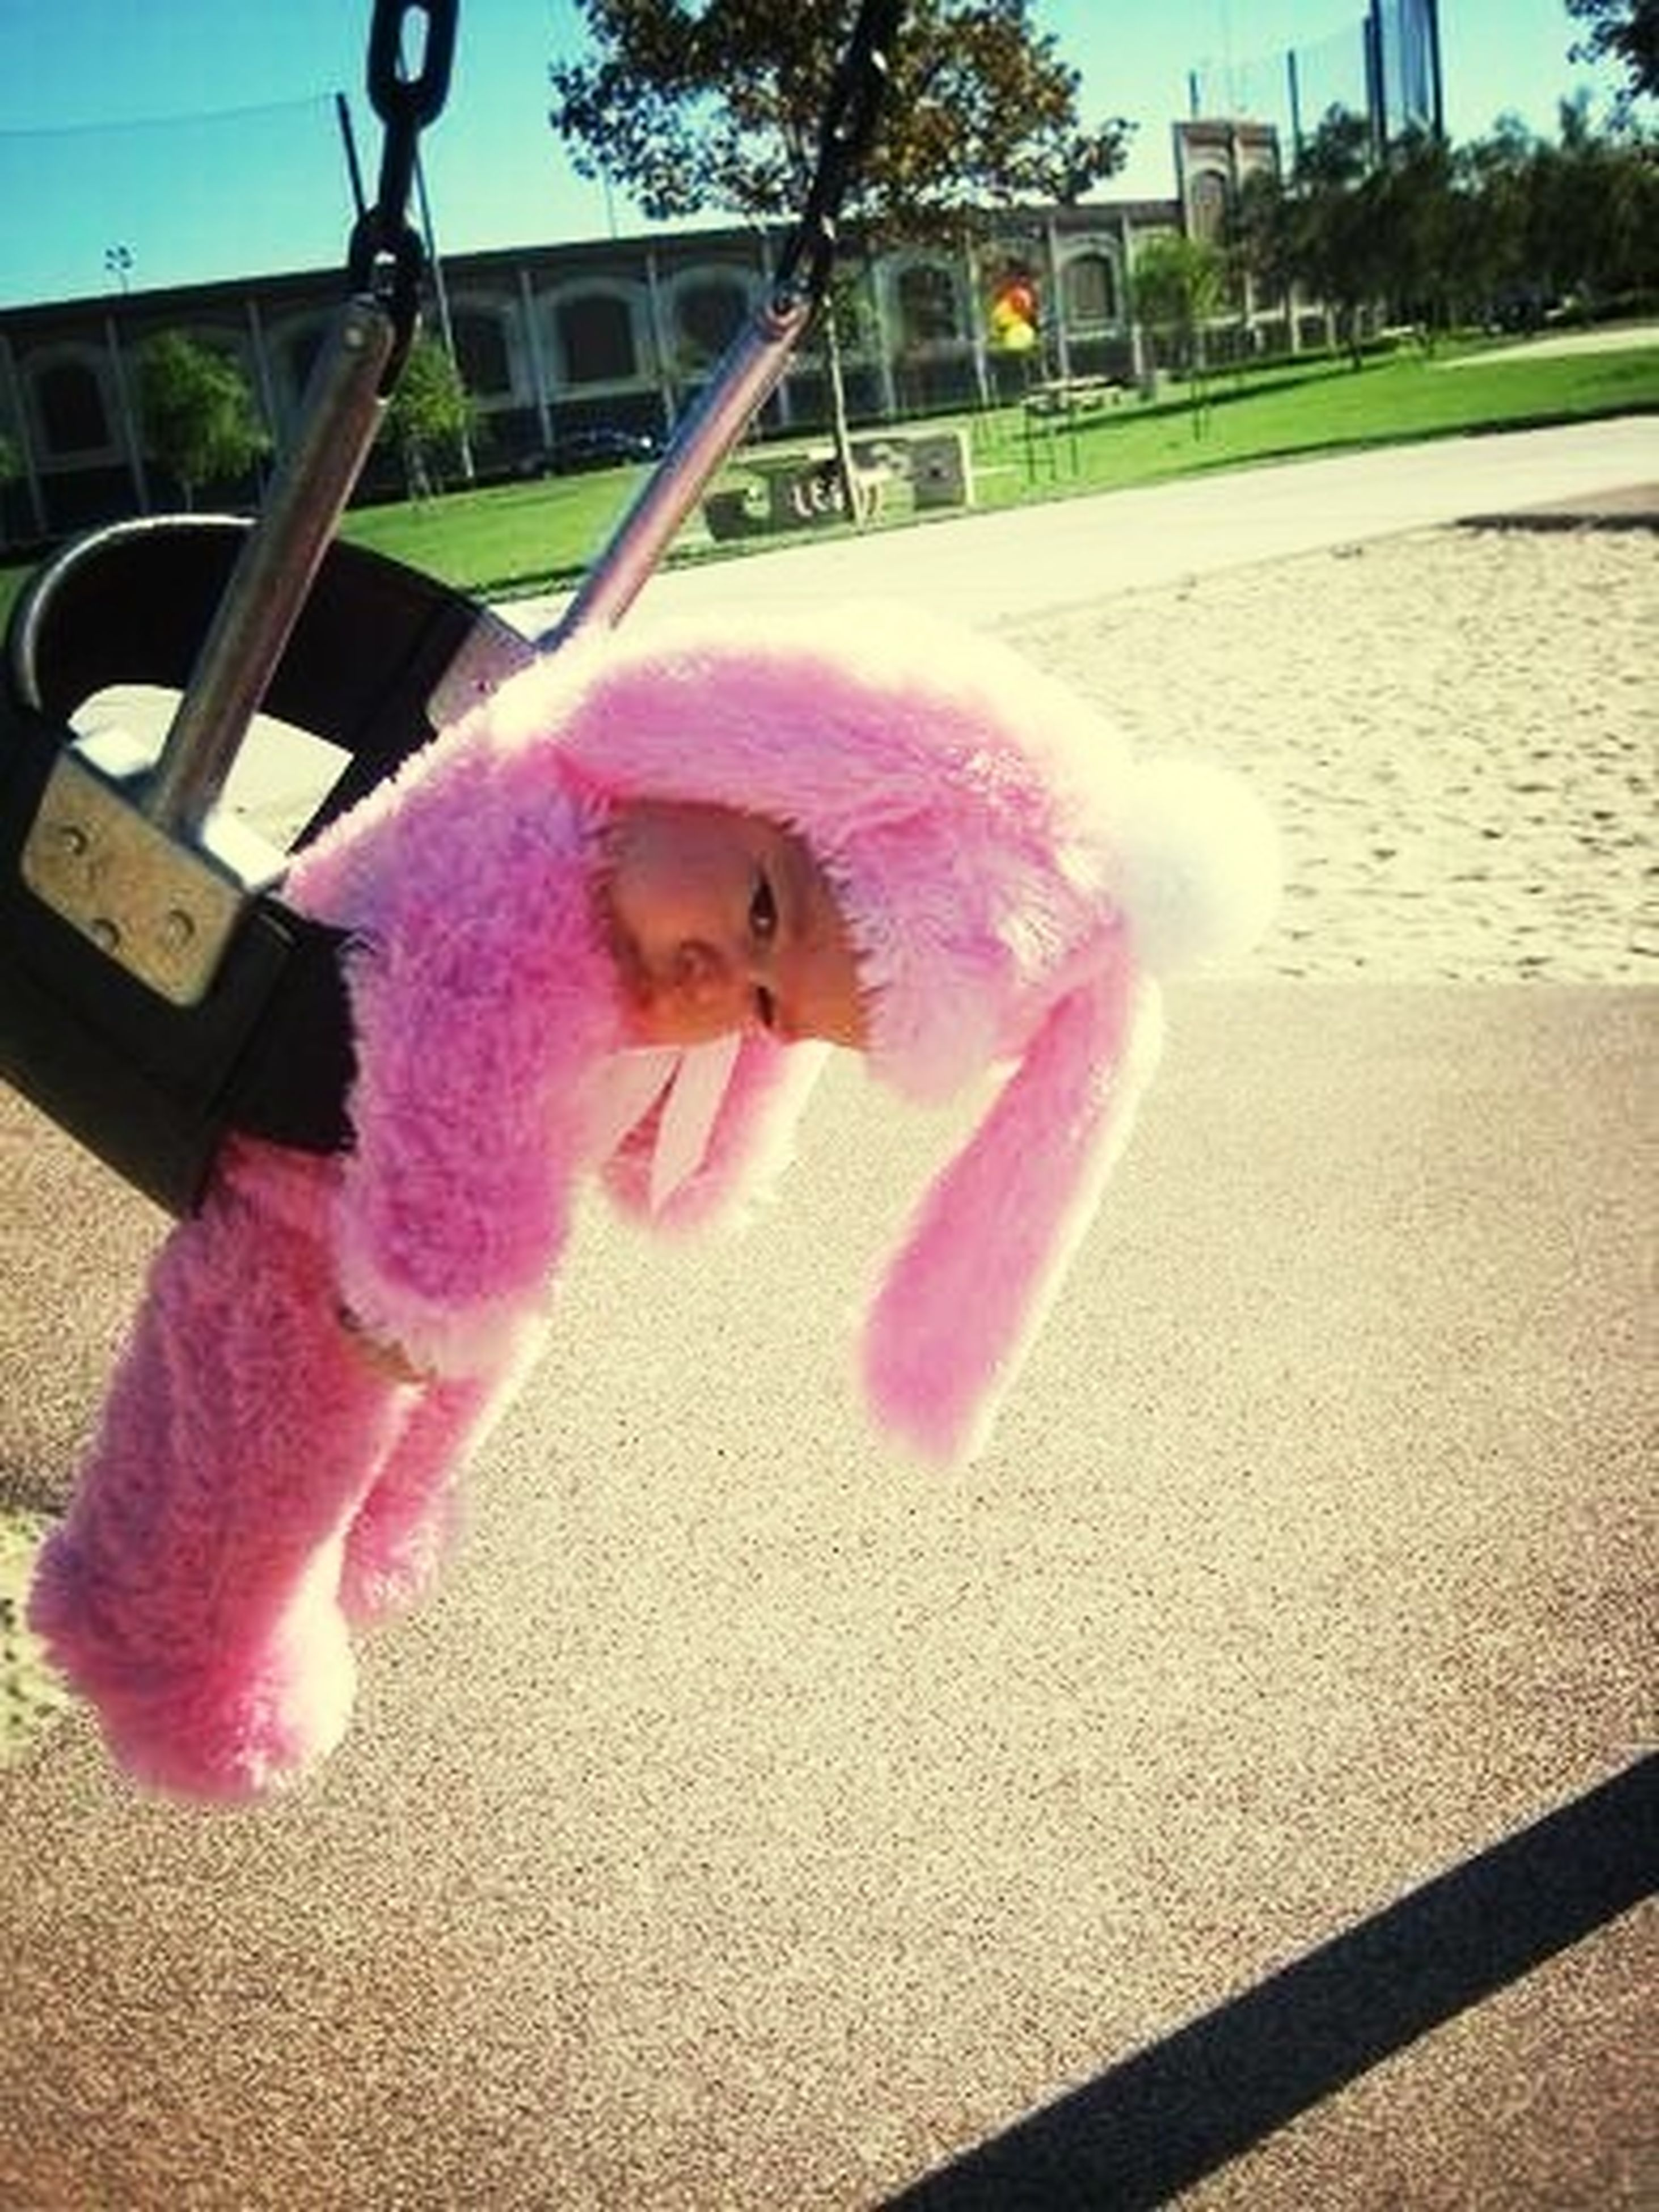 animal themes, toy, childhood, animal representation, one animal, dog, cute, full length, domestic animals, pink color, pets, playful, sunlight, elementary age, day, stuffed toy, outdoors, playing, street, close-up